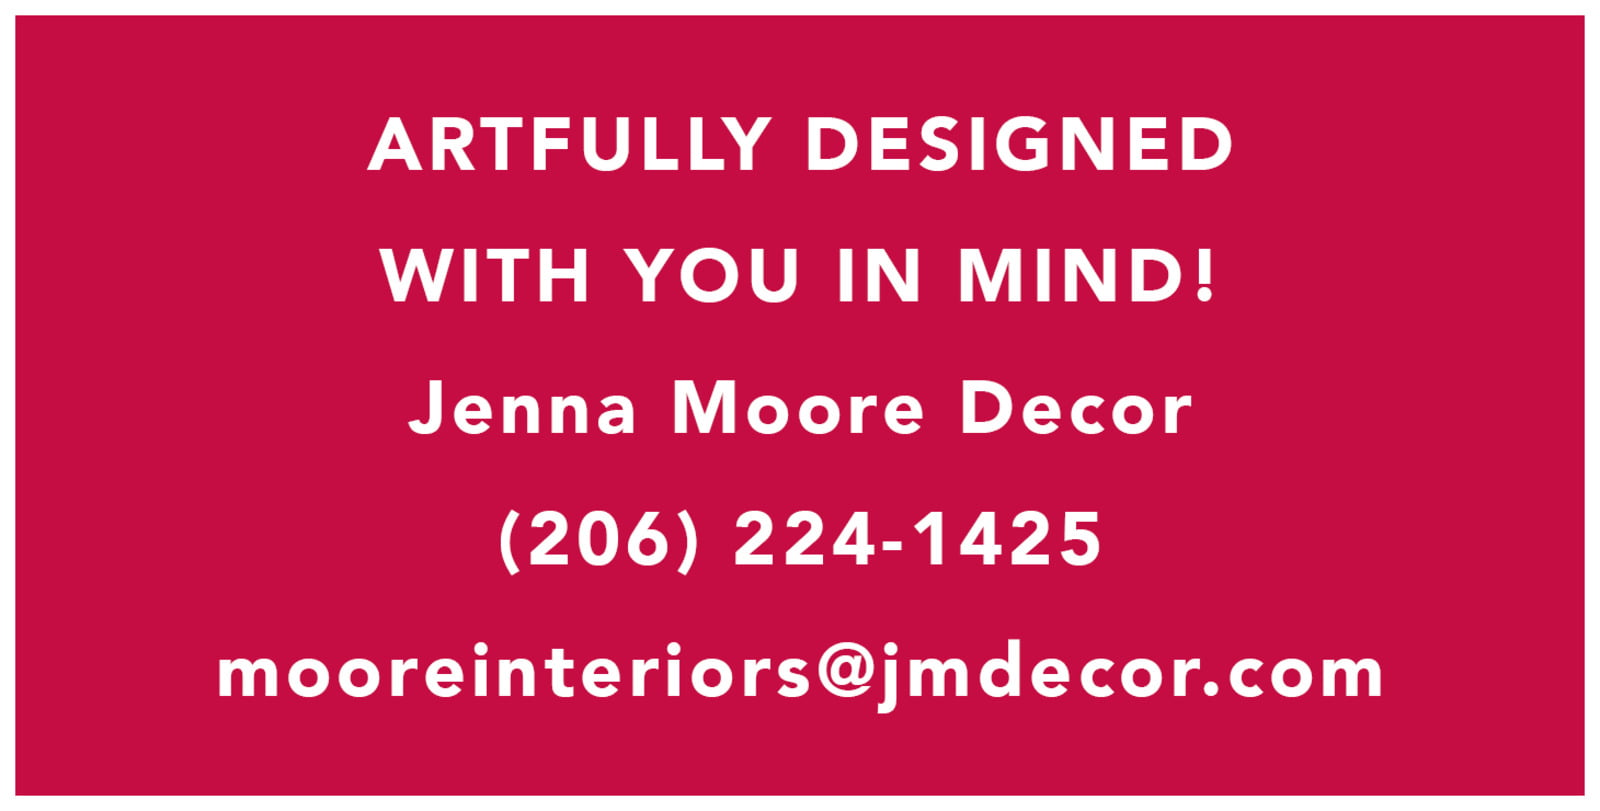 Small Rectangular Custom Text Labels - Deep Red - Elements Icon